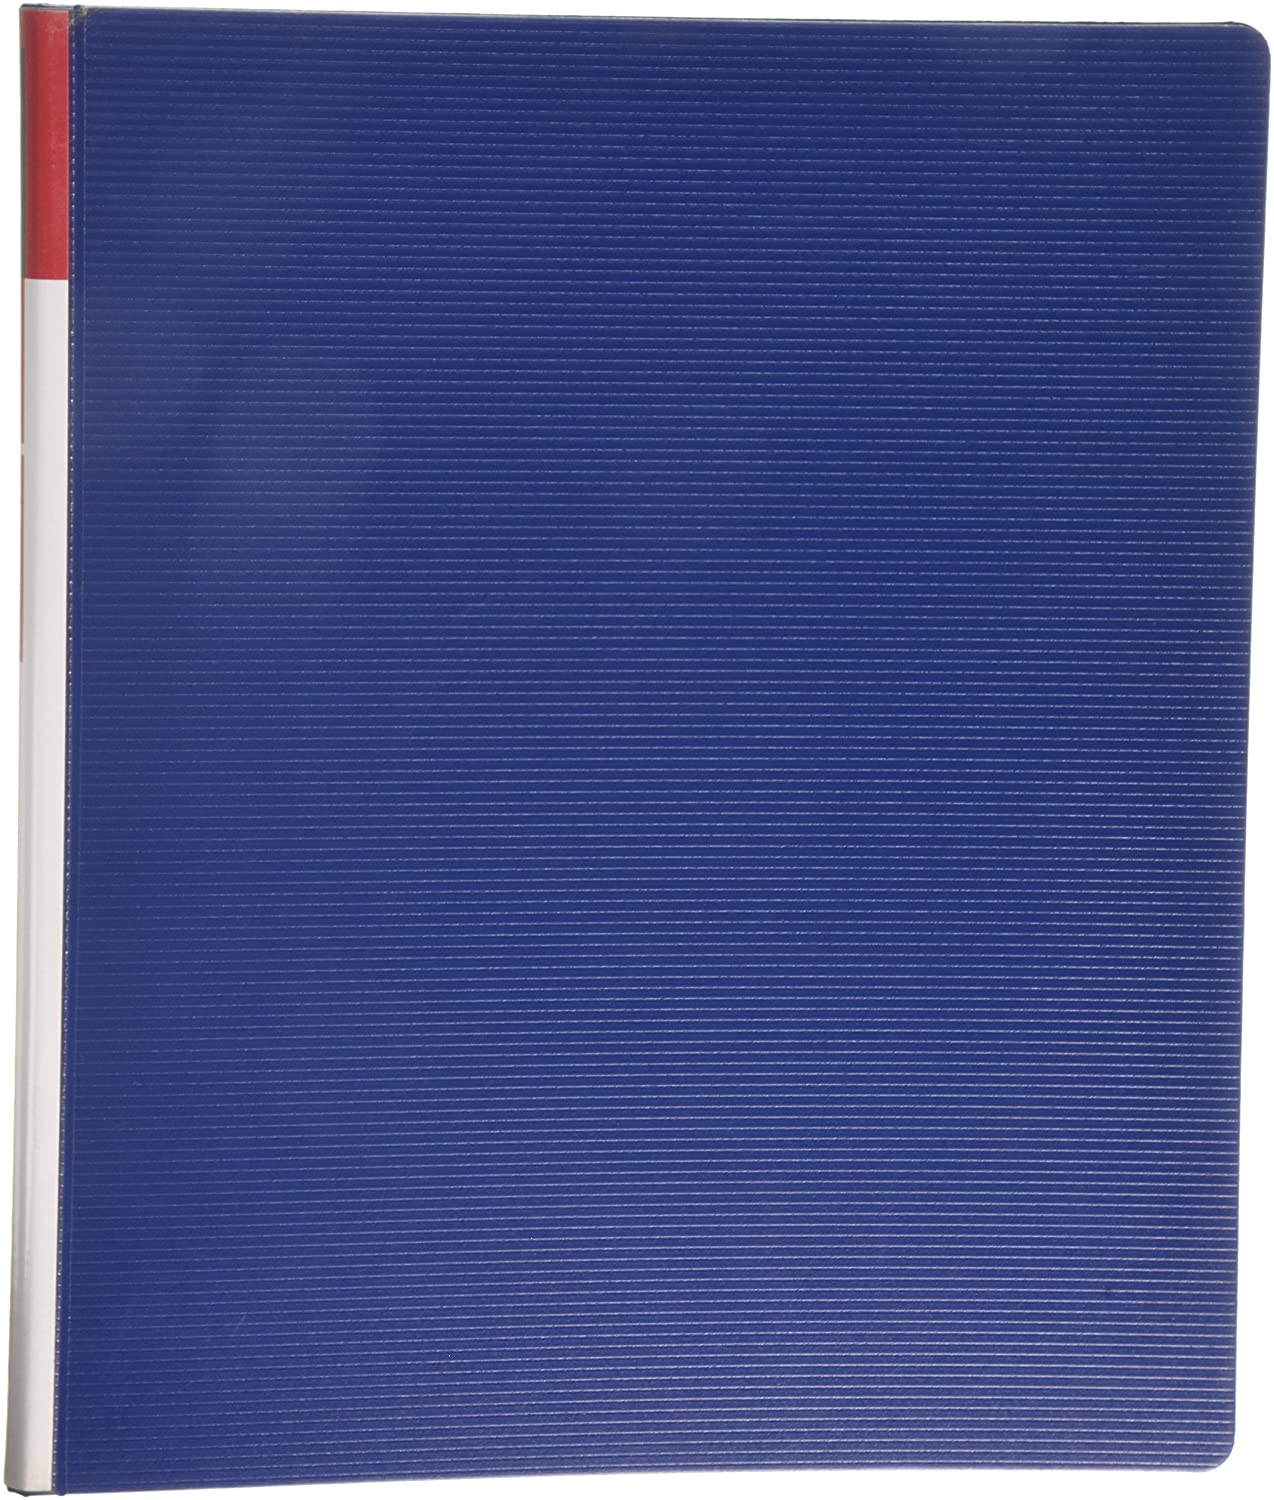 Proactive Straight Spine Ring Binder 4 O Ring 25mm Blue